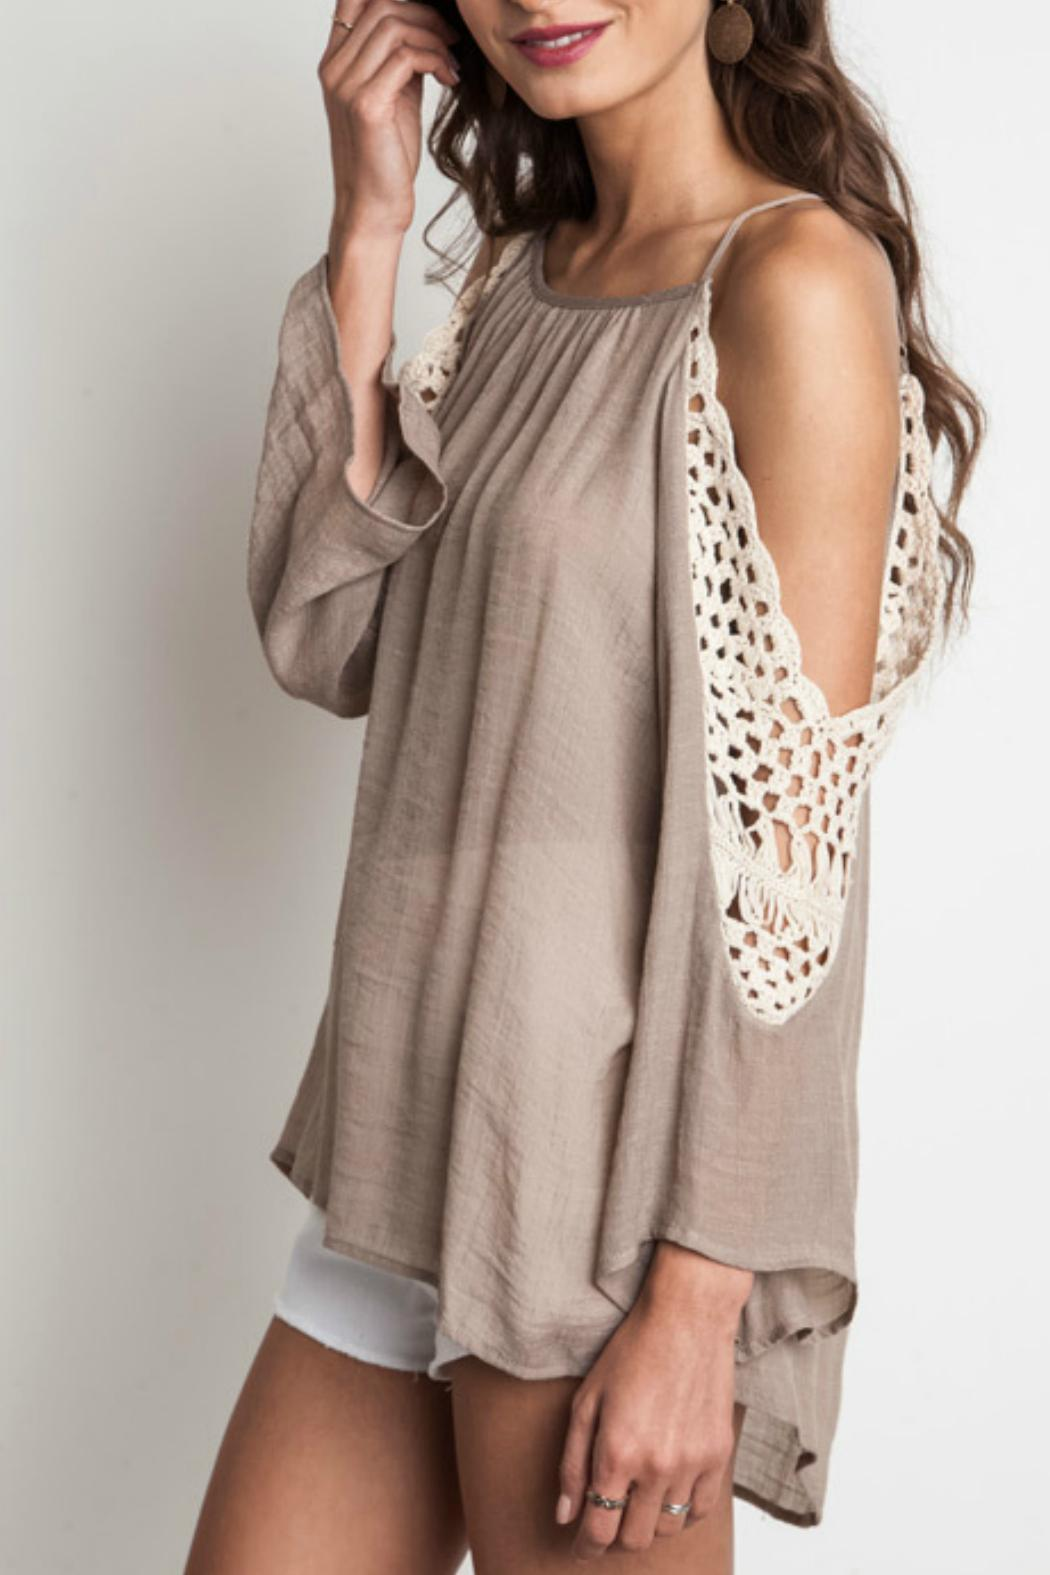 eaa885782c44ca Umgee USA Crochet Cold Shoulder Top from Montana by Foxwood Boutique ...